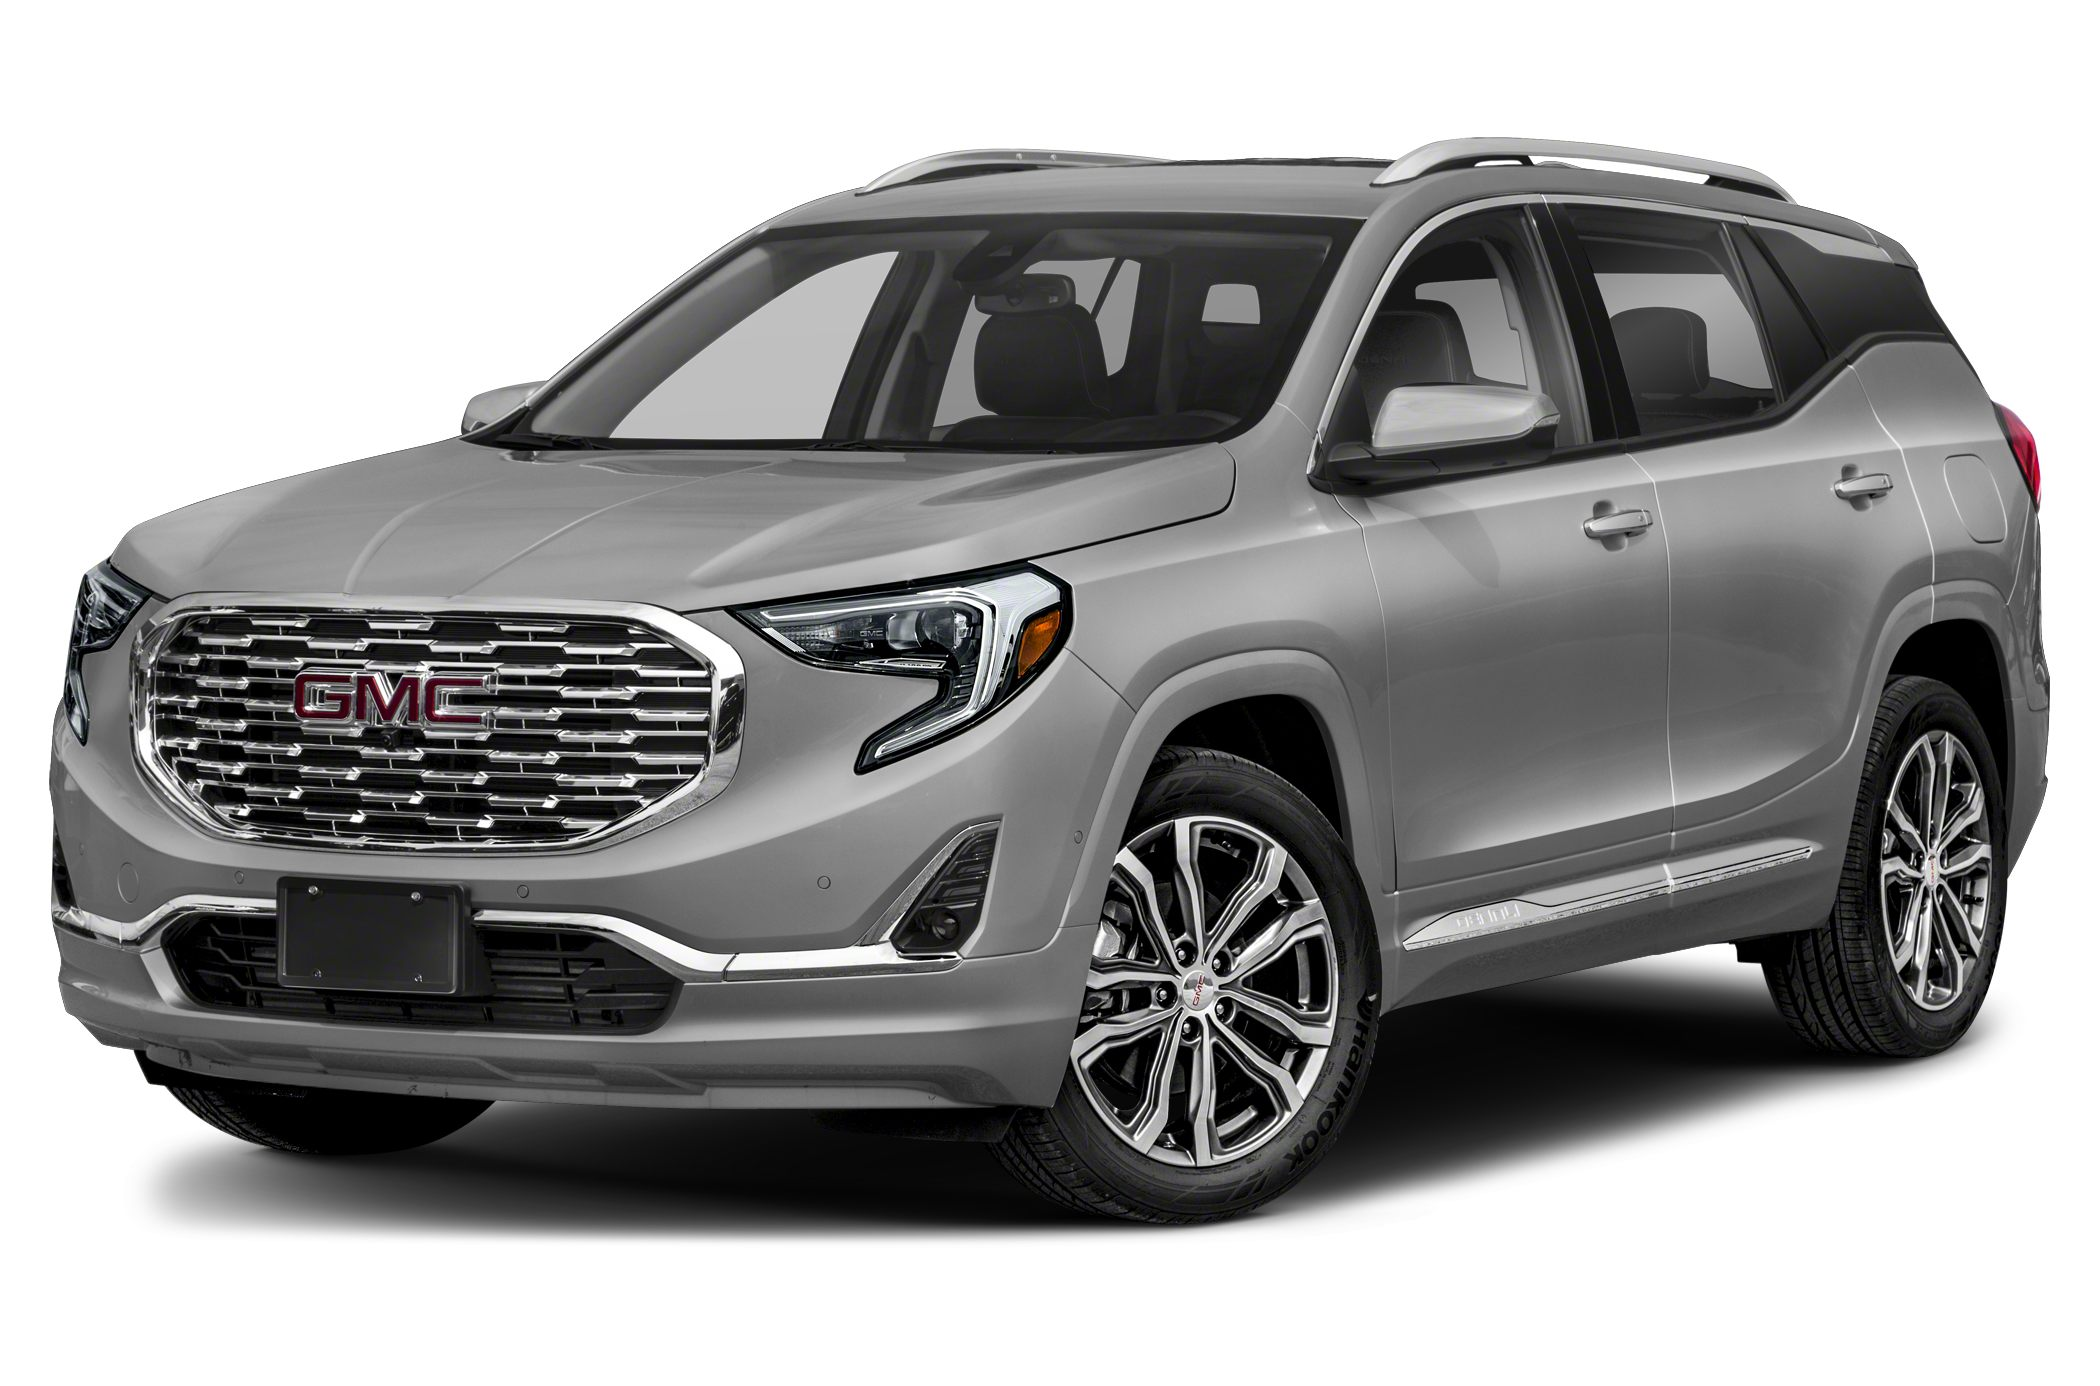 2018 GMC Terrain Denali Steel Metallic 2018 GMC Terrain Denali AWD 9-Speed Automatic 20L Turbocha